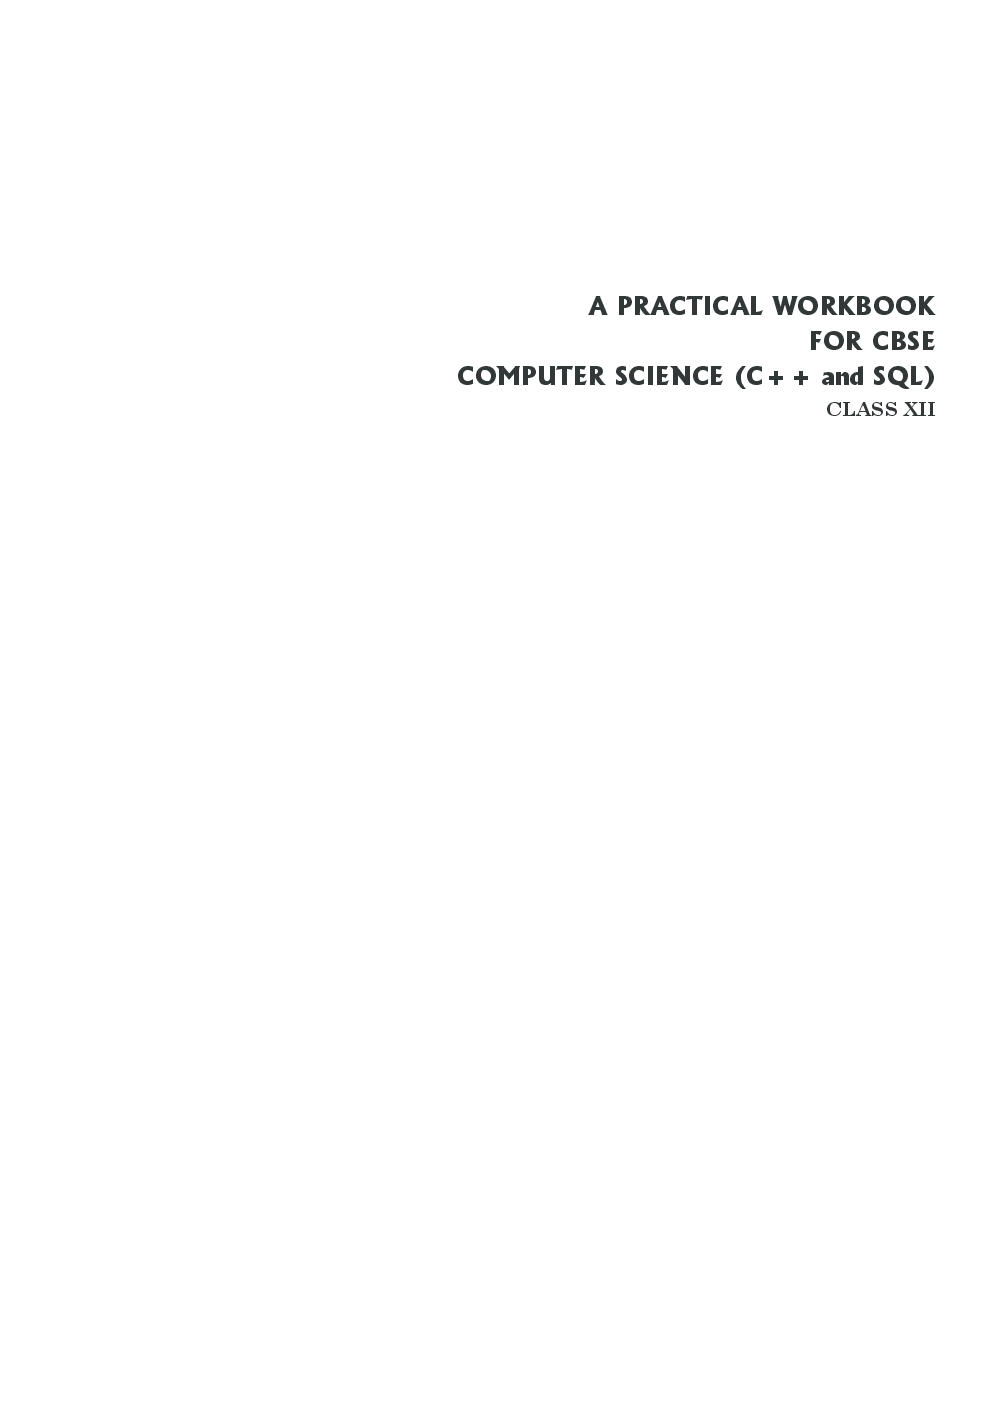 A Practical Workbook for Computer  Science (C++ and SQL) Class 12th  New 2014 - Page 2